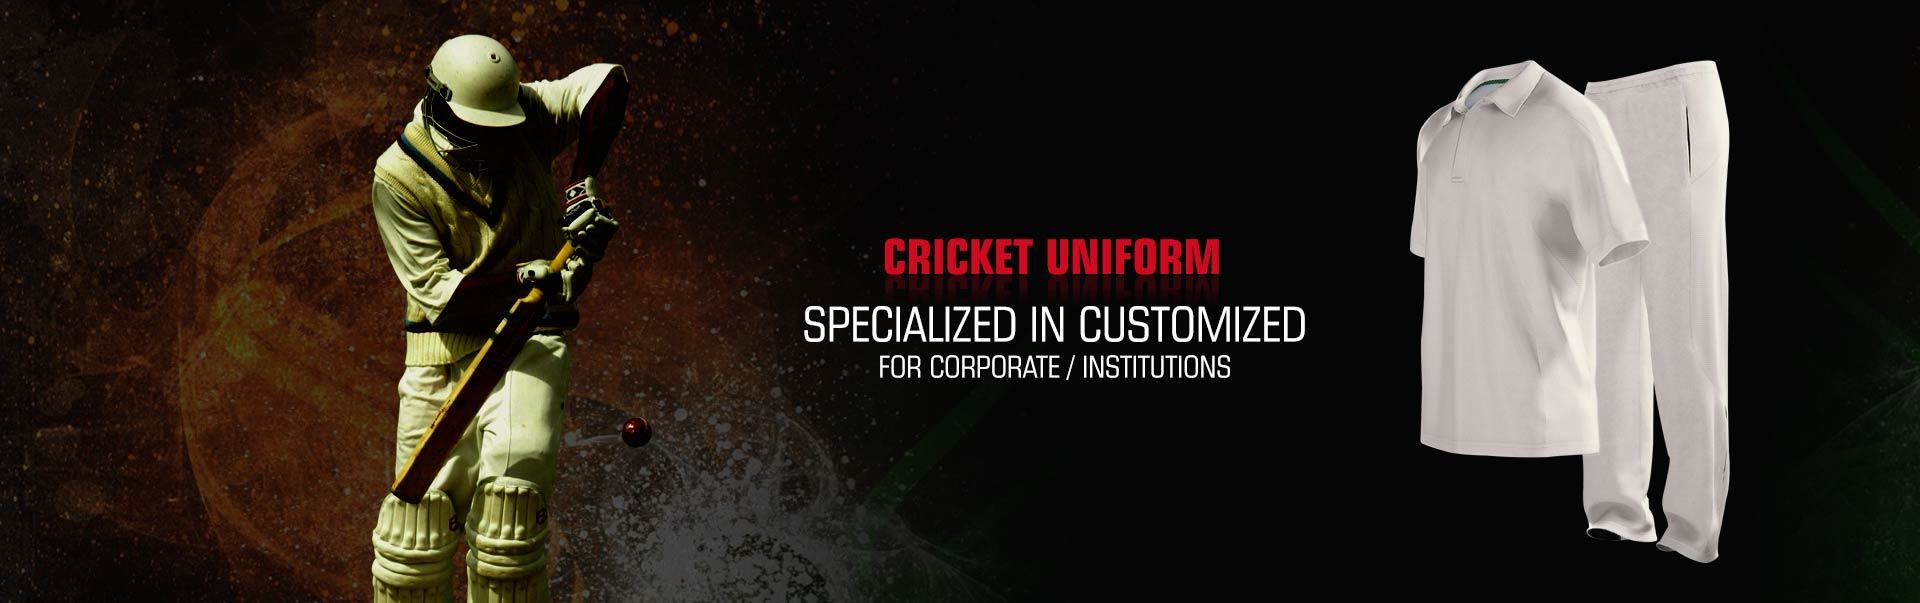 Cricket Uniform Wholesaler, Suppliers in Philadelphia